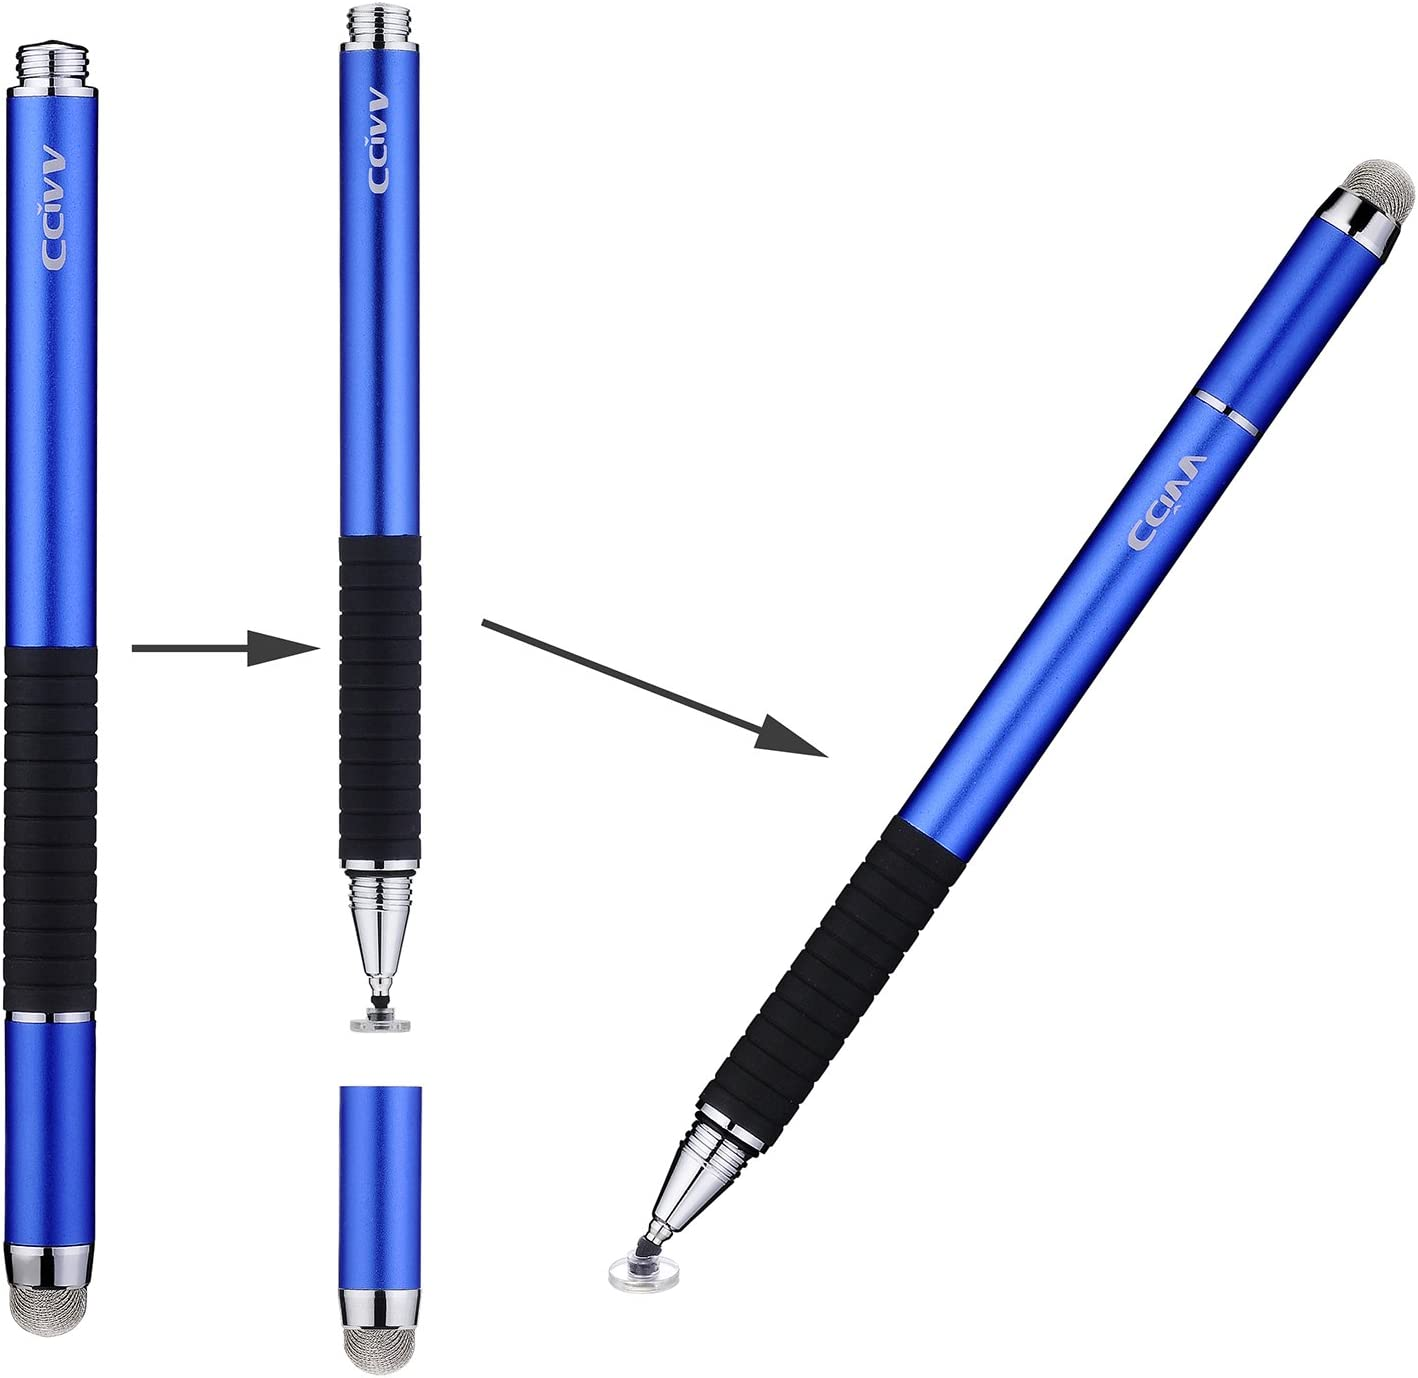 CCIVV Stylus Pen 2 in 1 Fine Point & Mesh Tip for Touch Screen, Compatible for Tablet and Cellphone (1Pc, Blue)